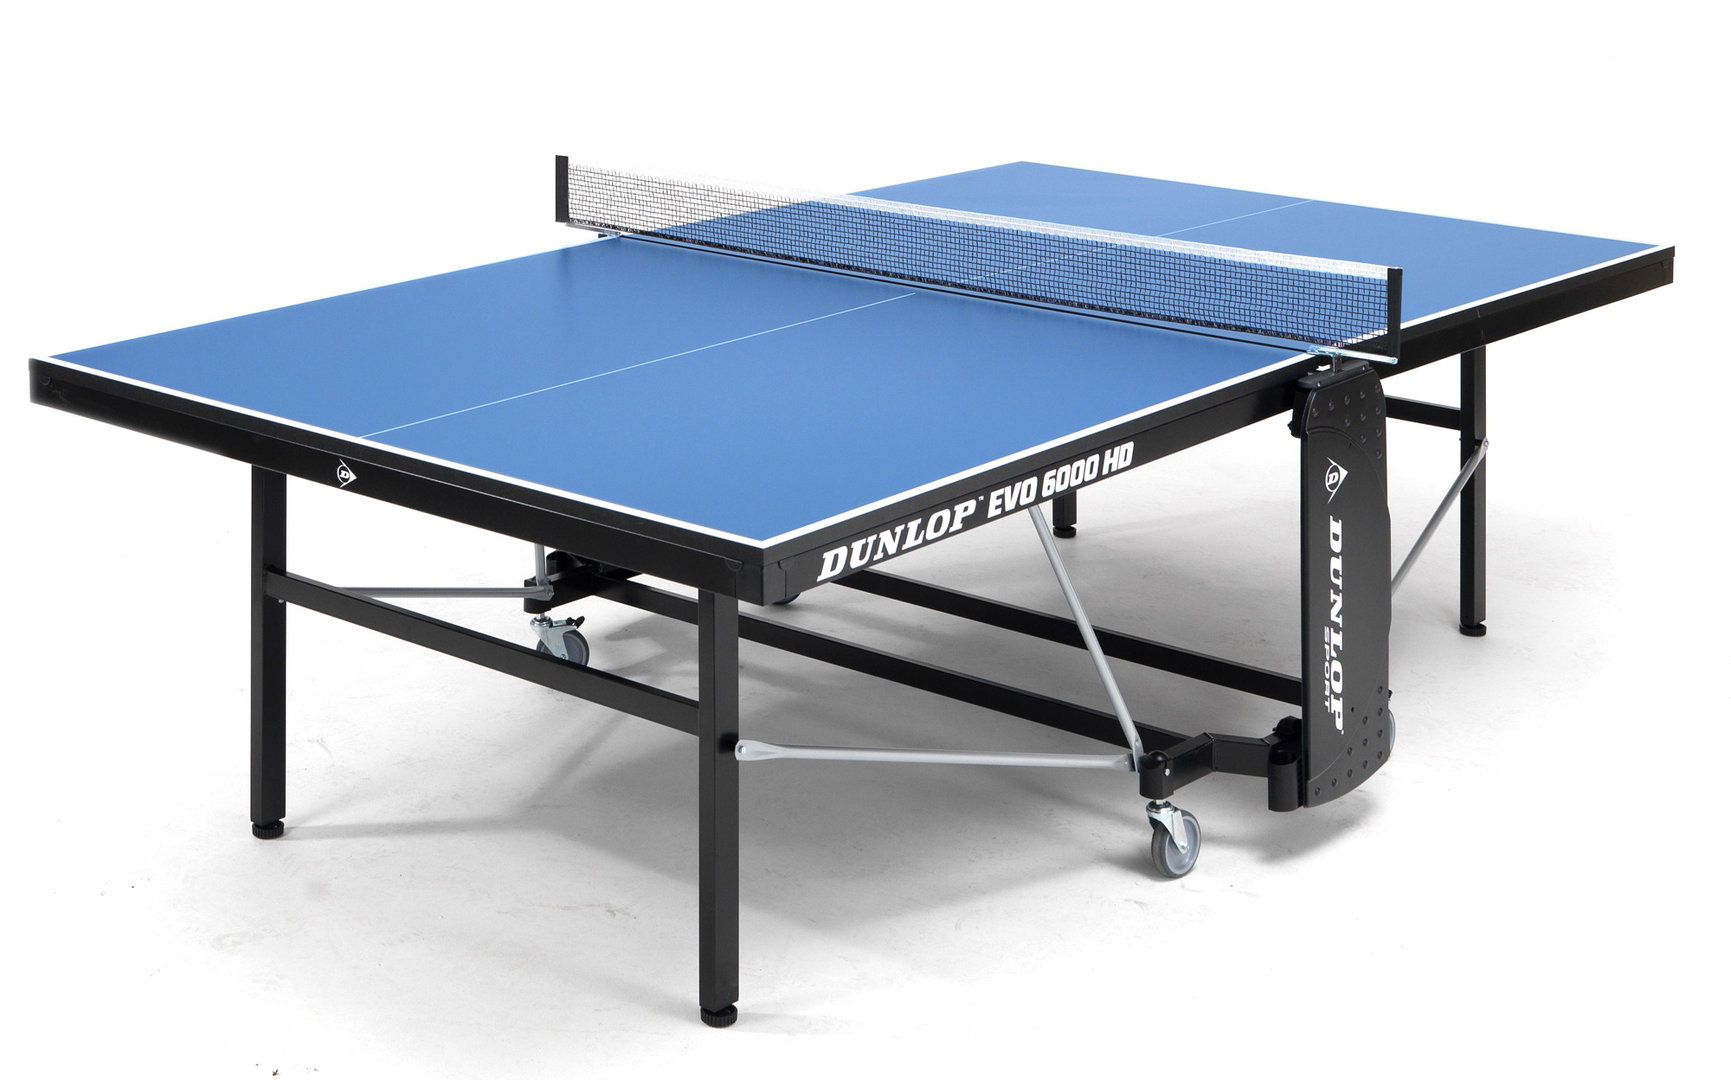 Dunlop evo 6000 hd full size indoor table tennis table in blue with bats balls and net included - Dimensions of a table tennis board ...